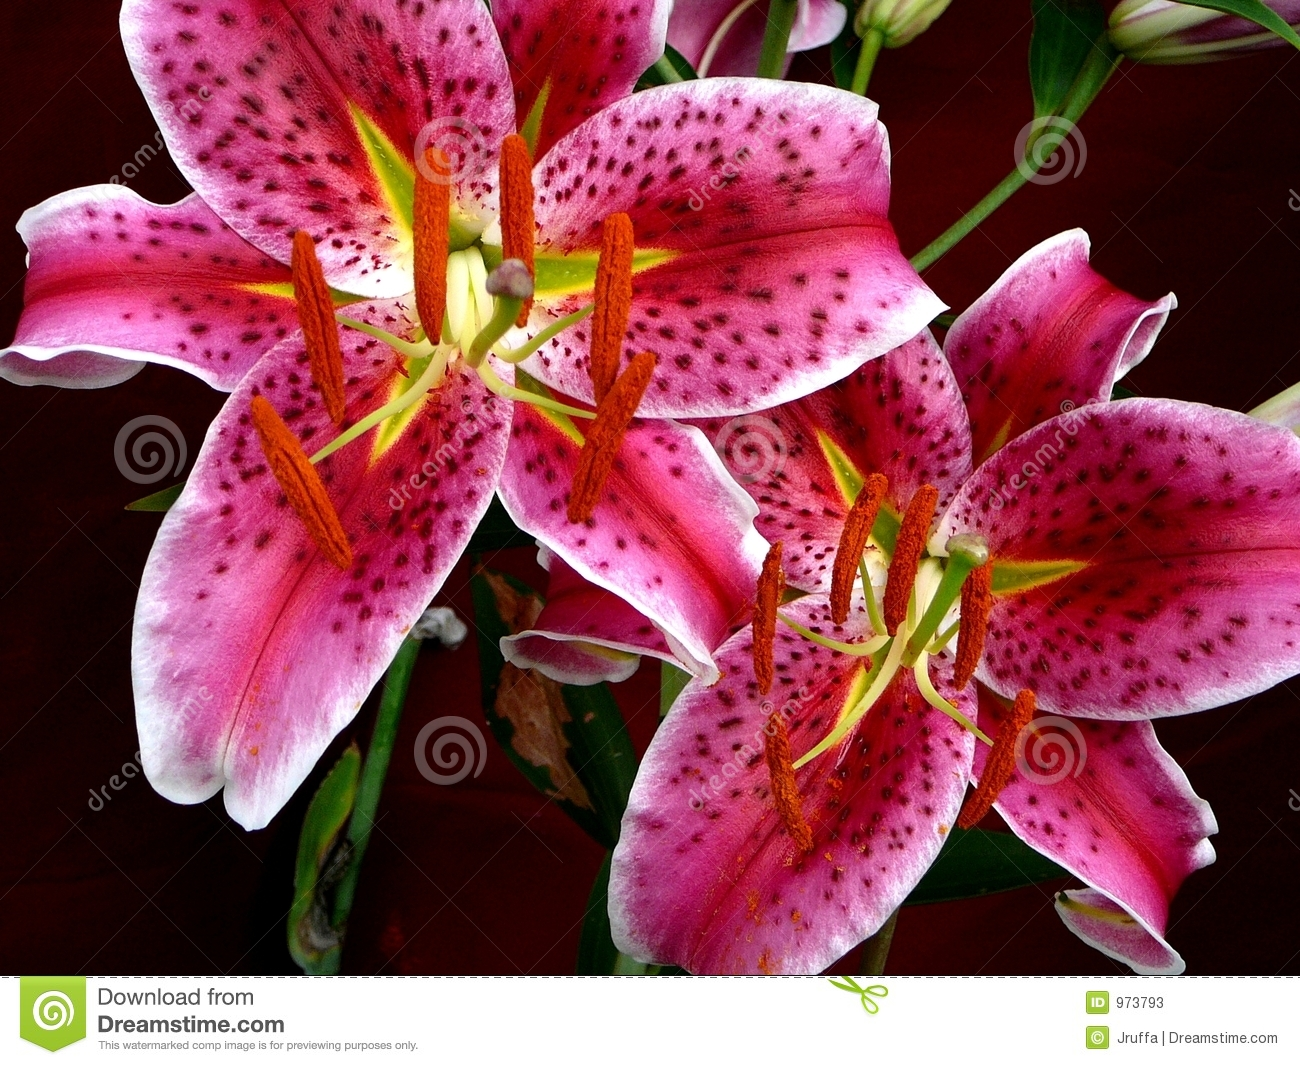 stargazer lily stock photos, images,  pictures   images, Natural flower